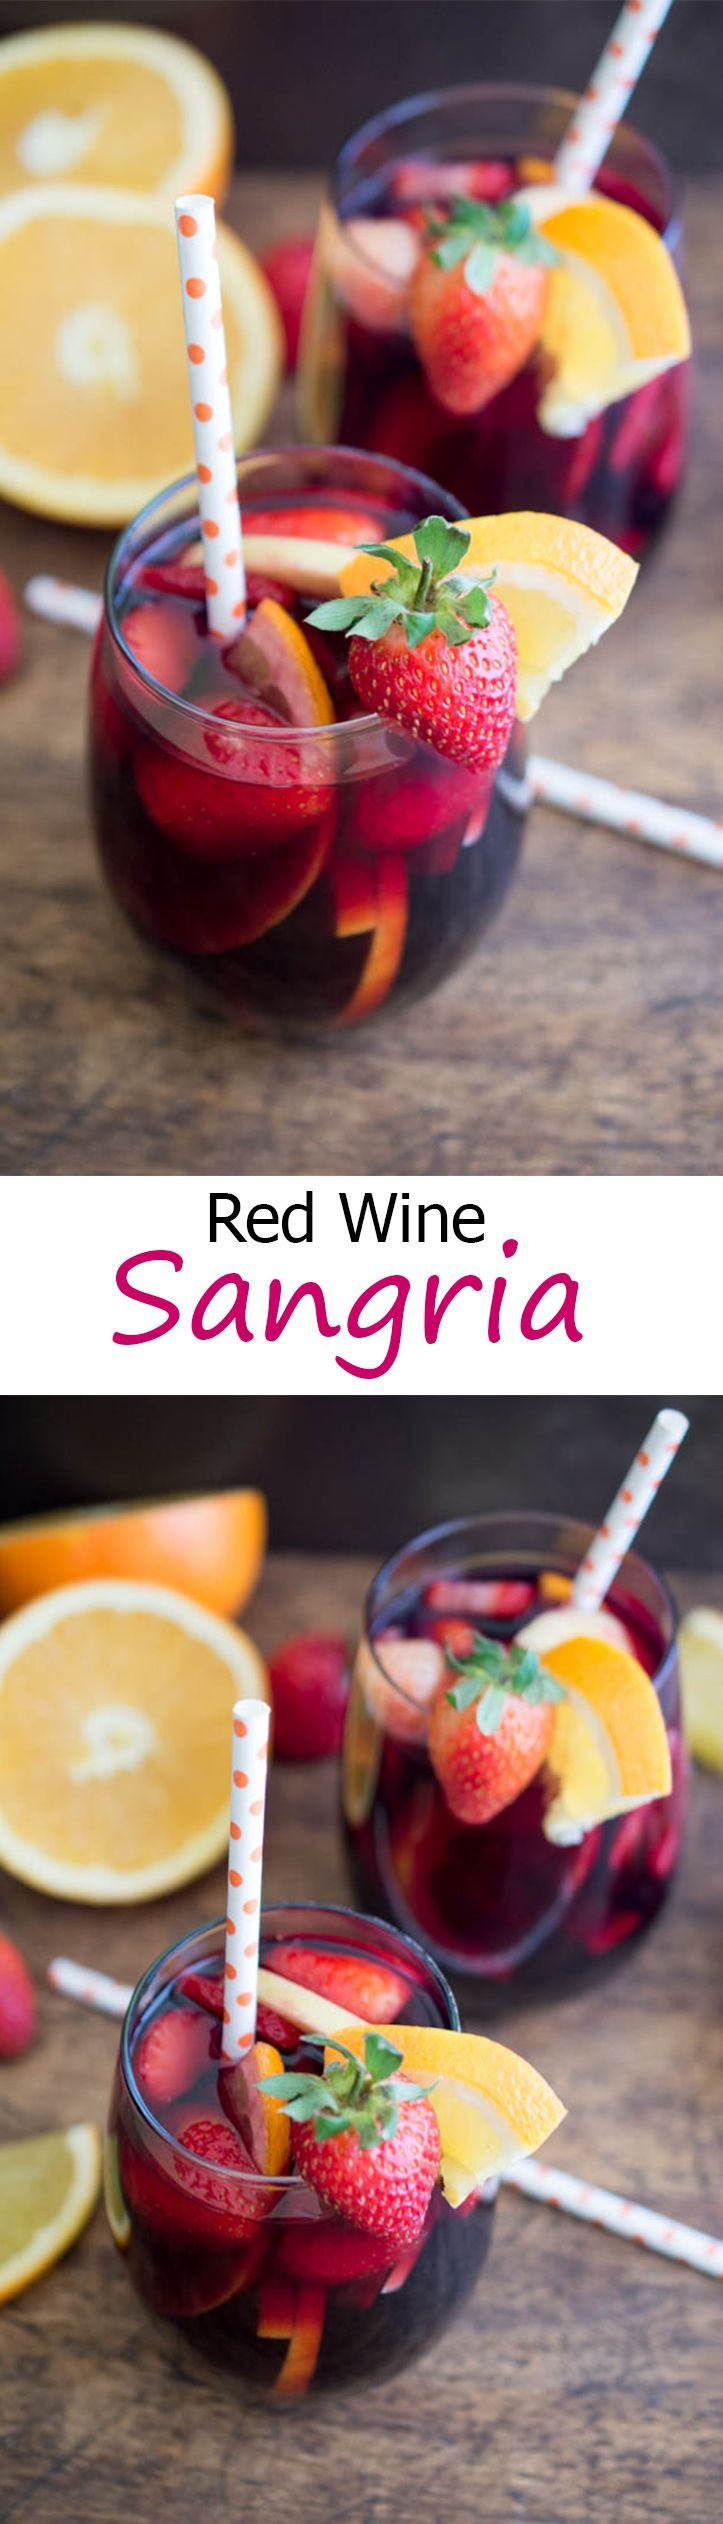 This red wine sangria recipe is perfect to beat the heat!